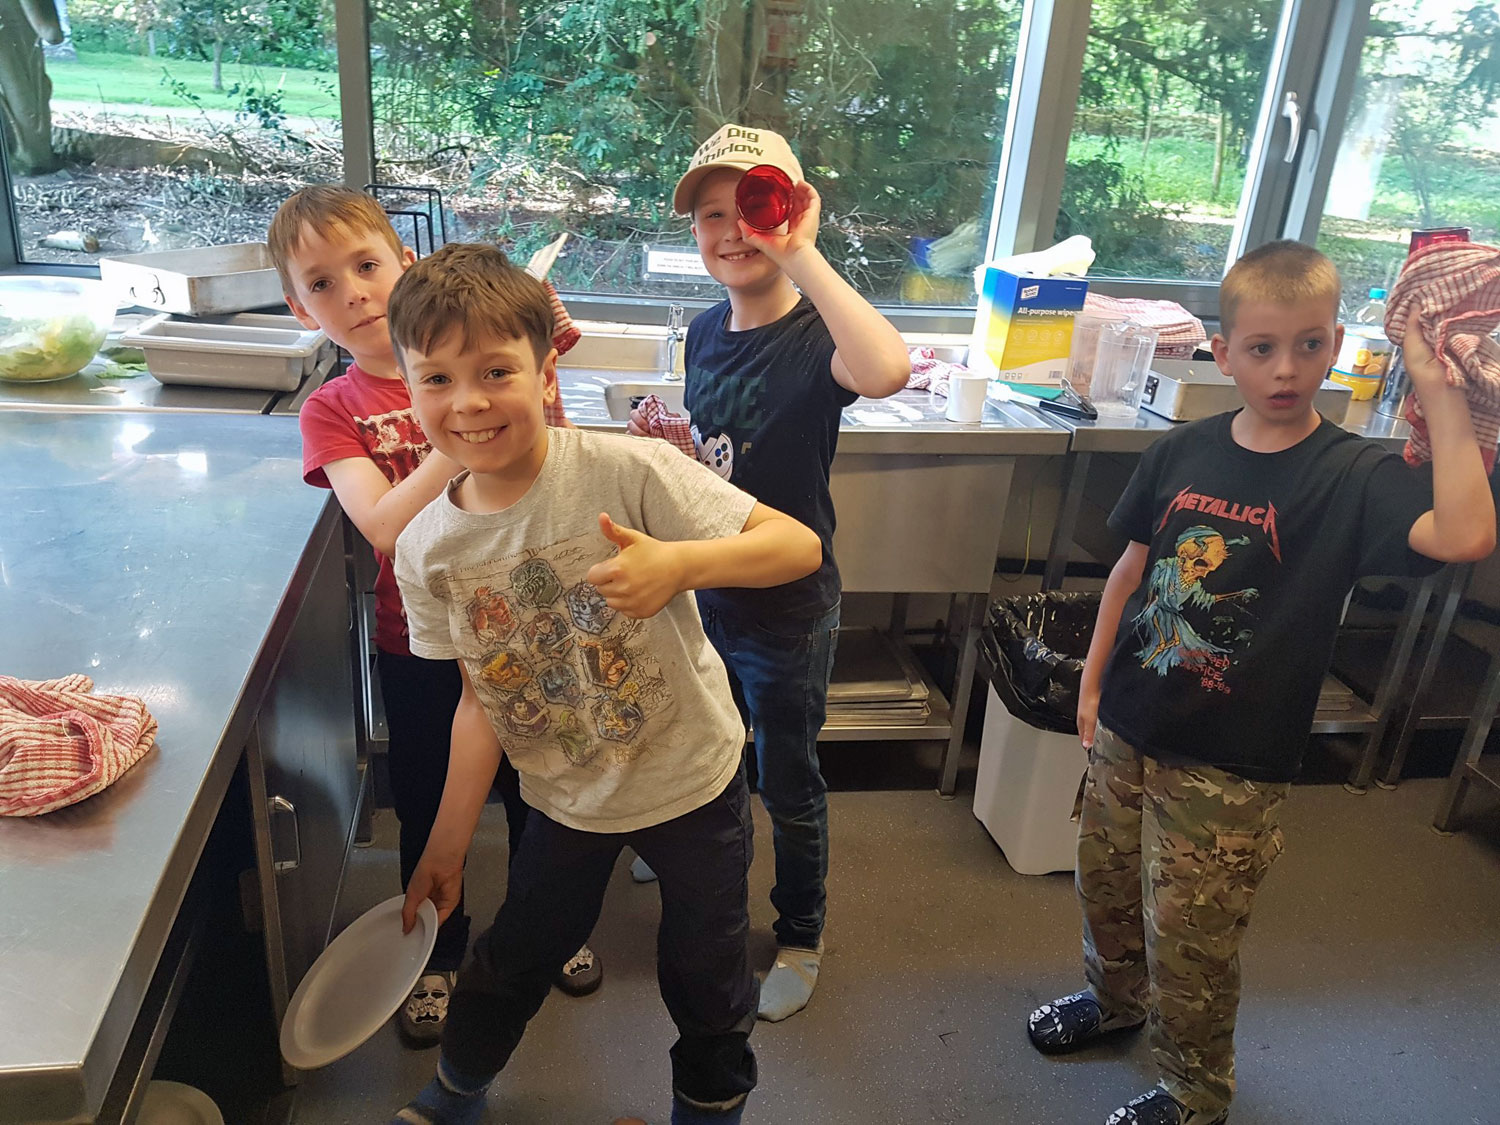 School children playfully dry dishes in the kitchen